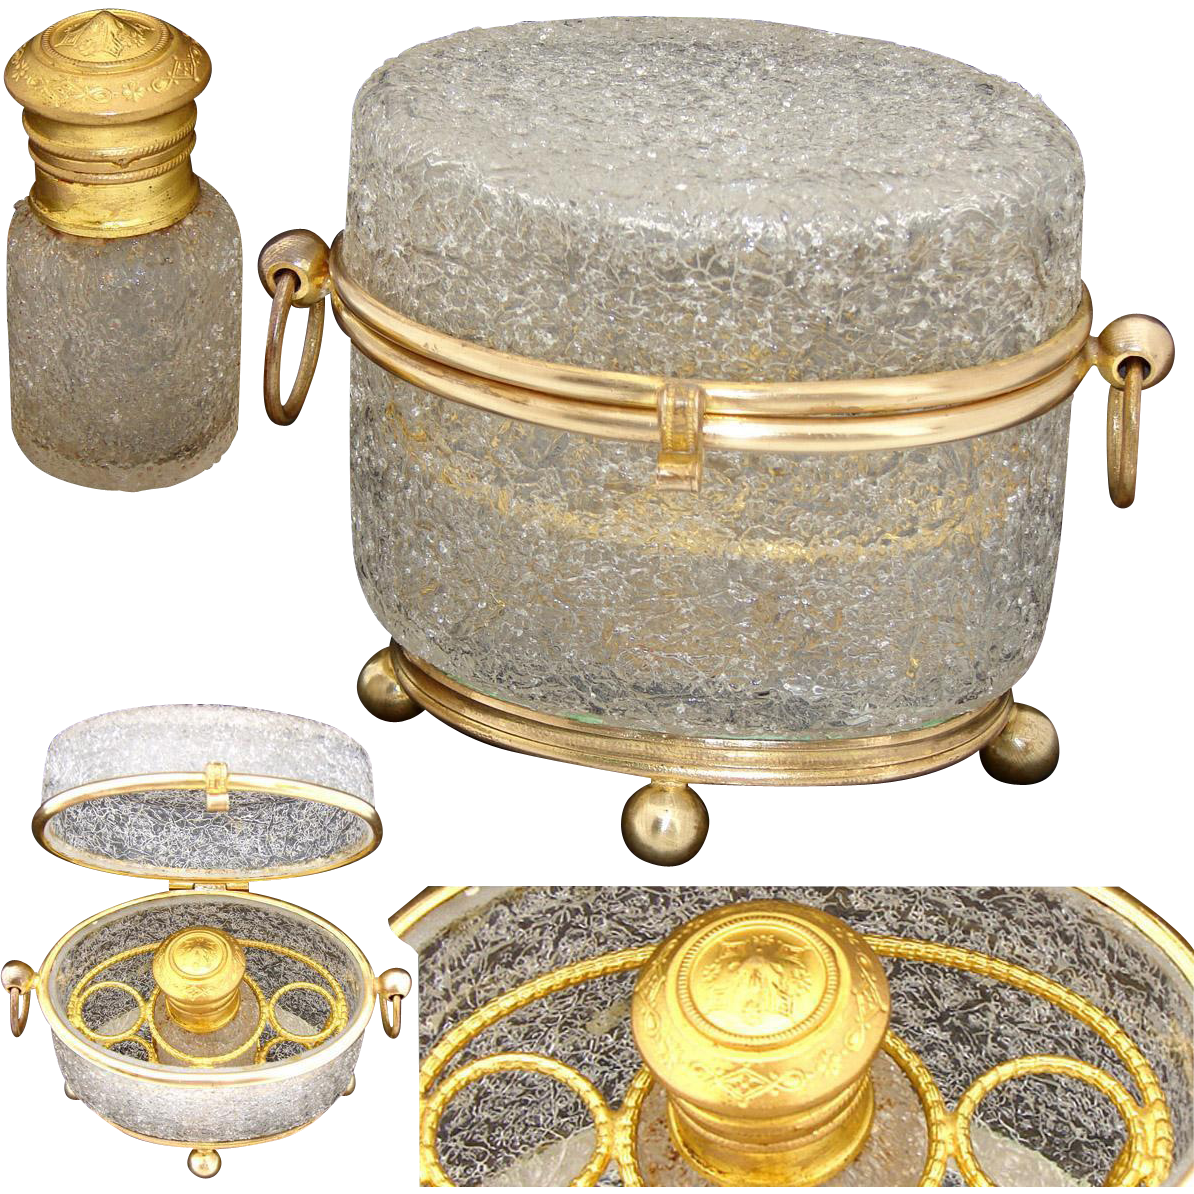 Antique French Scent Caddy, Casket in Crackle Glass, Fitted With Perfume Flask, Bottle